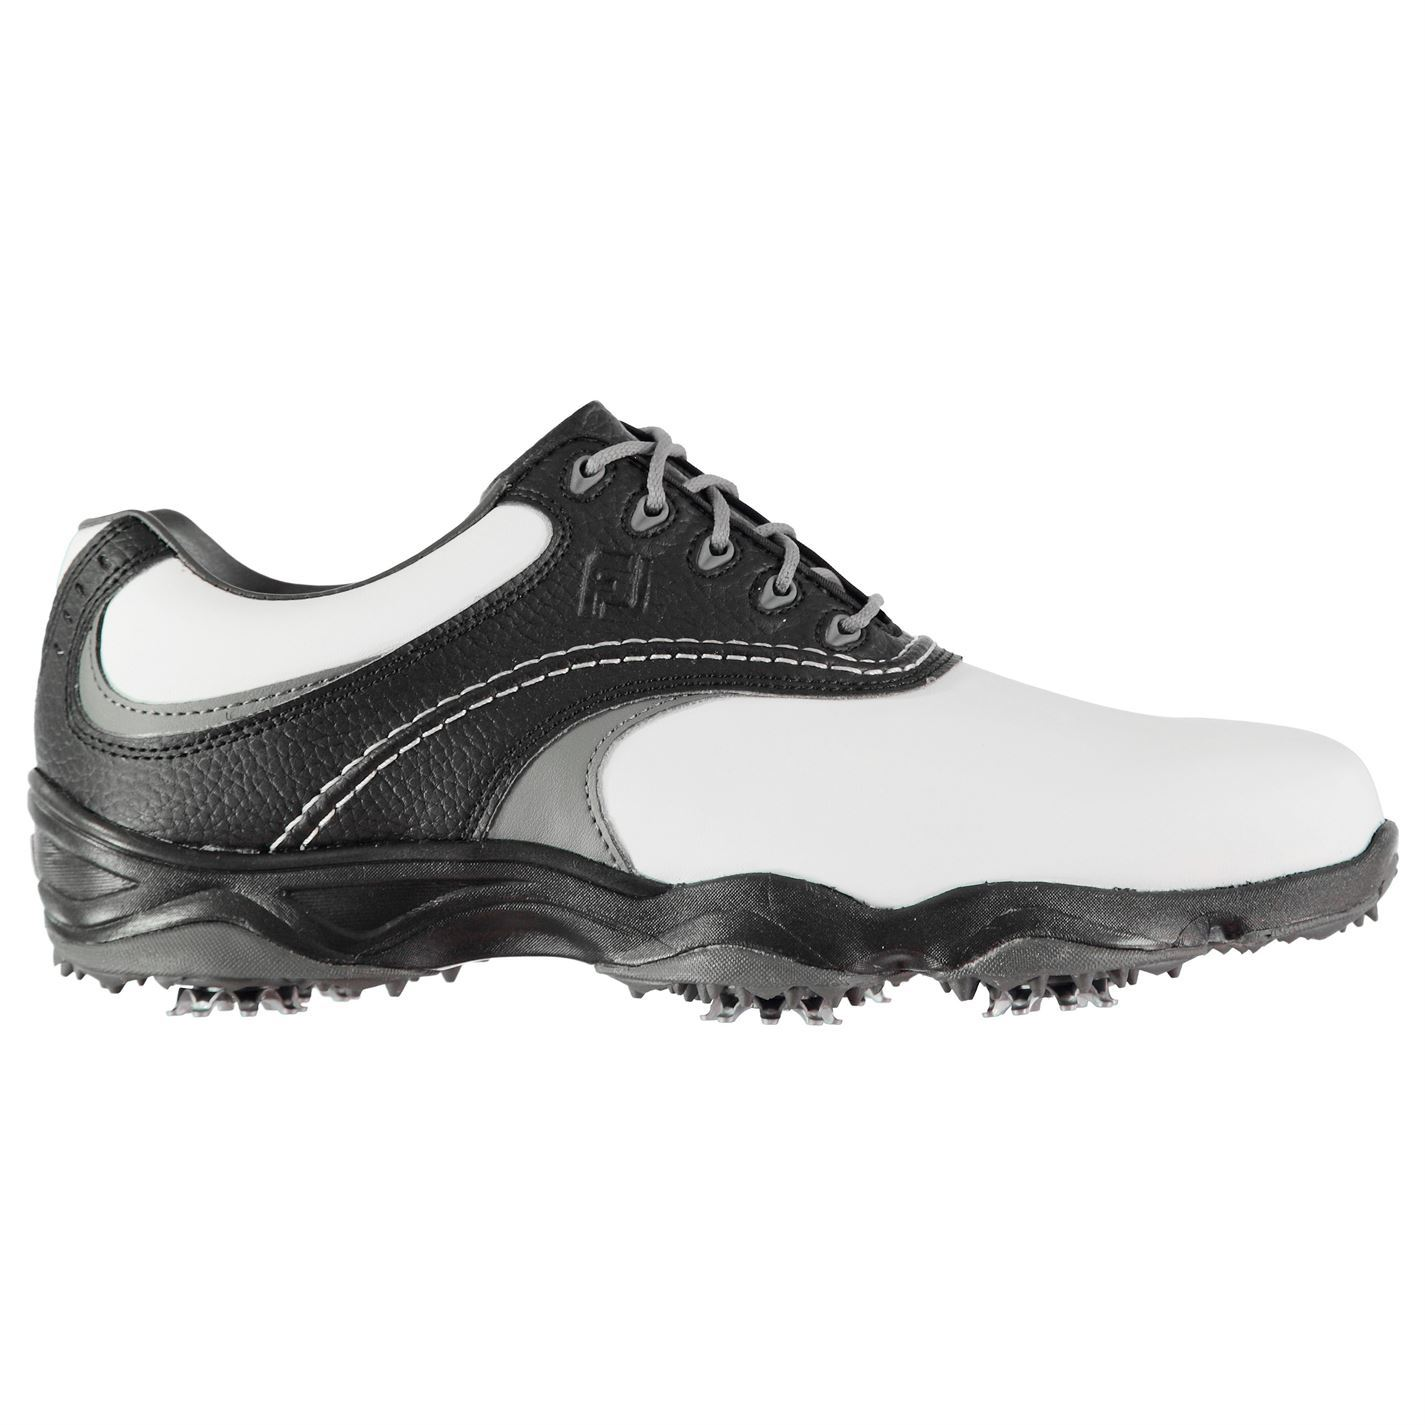 Footjoy-Originals-Golf-Shoes-Mens-Spikes-Footwear thumbnail 20